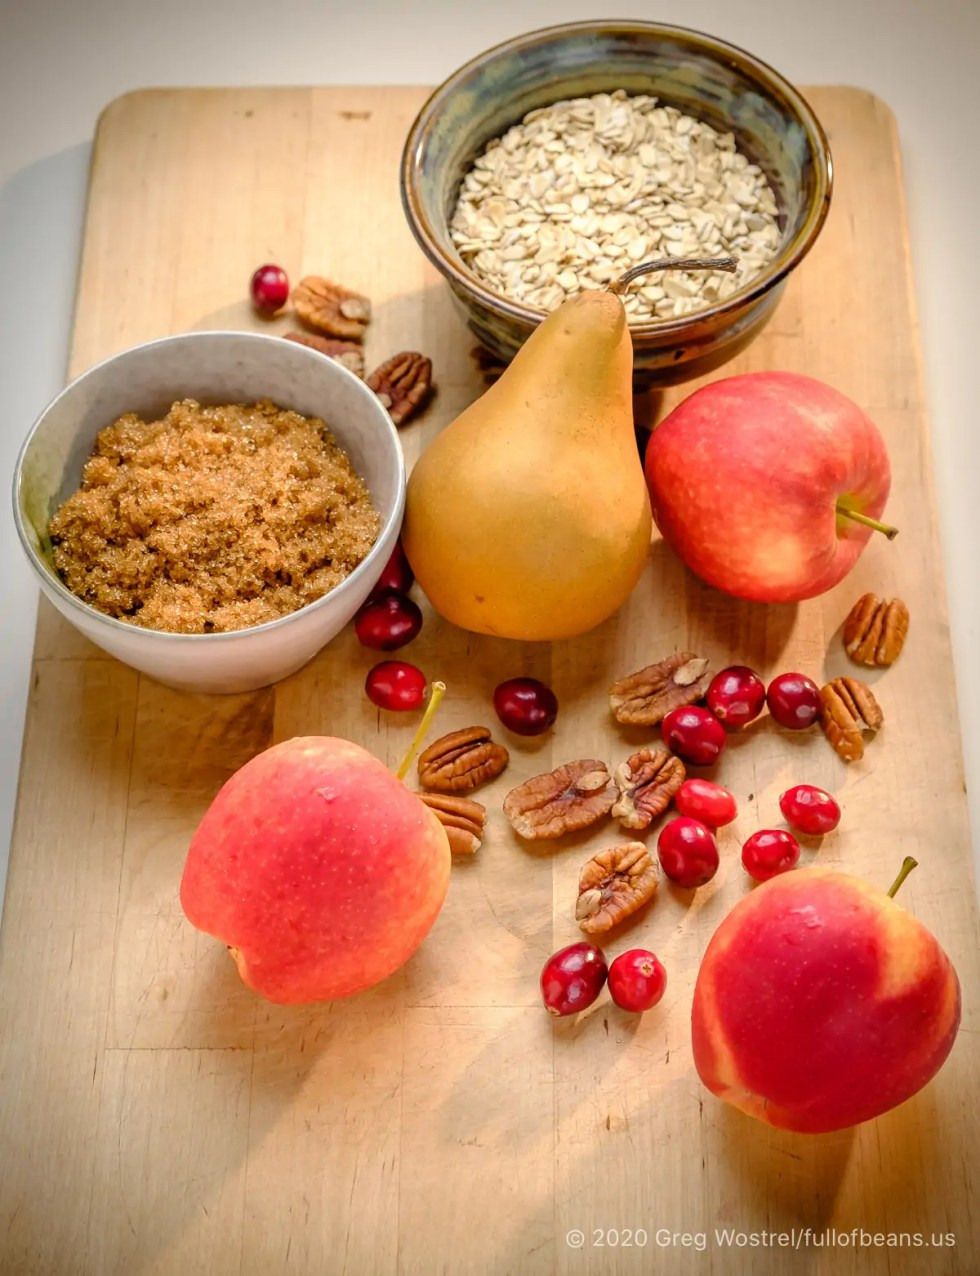 Pears, Apples, Pecans, Cranberry, Oatmeal and Brown Sugar which make a special vegan holiday dessert